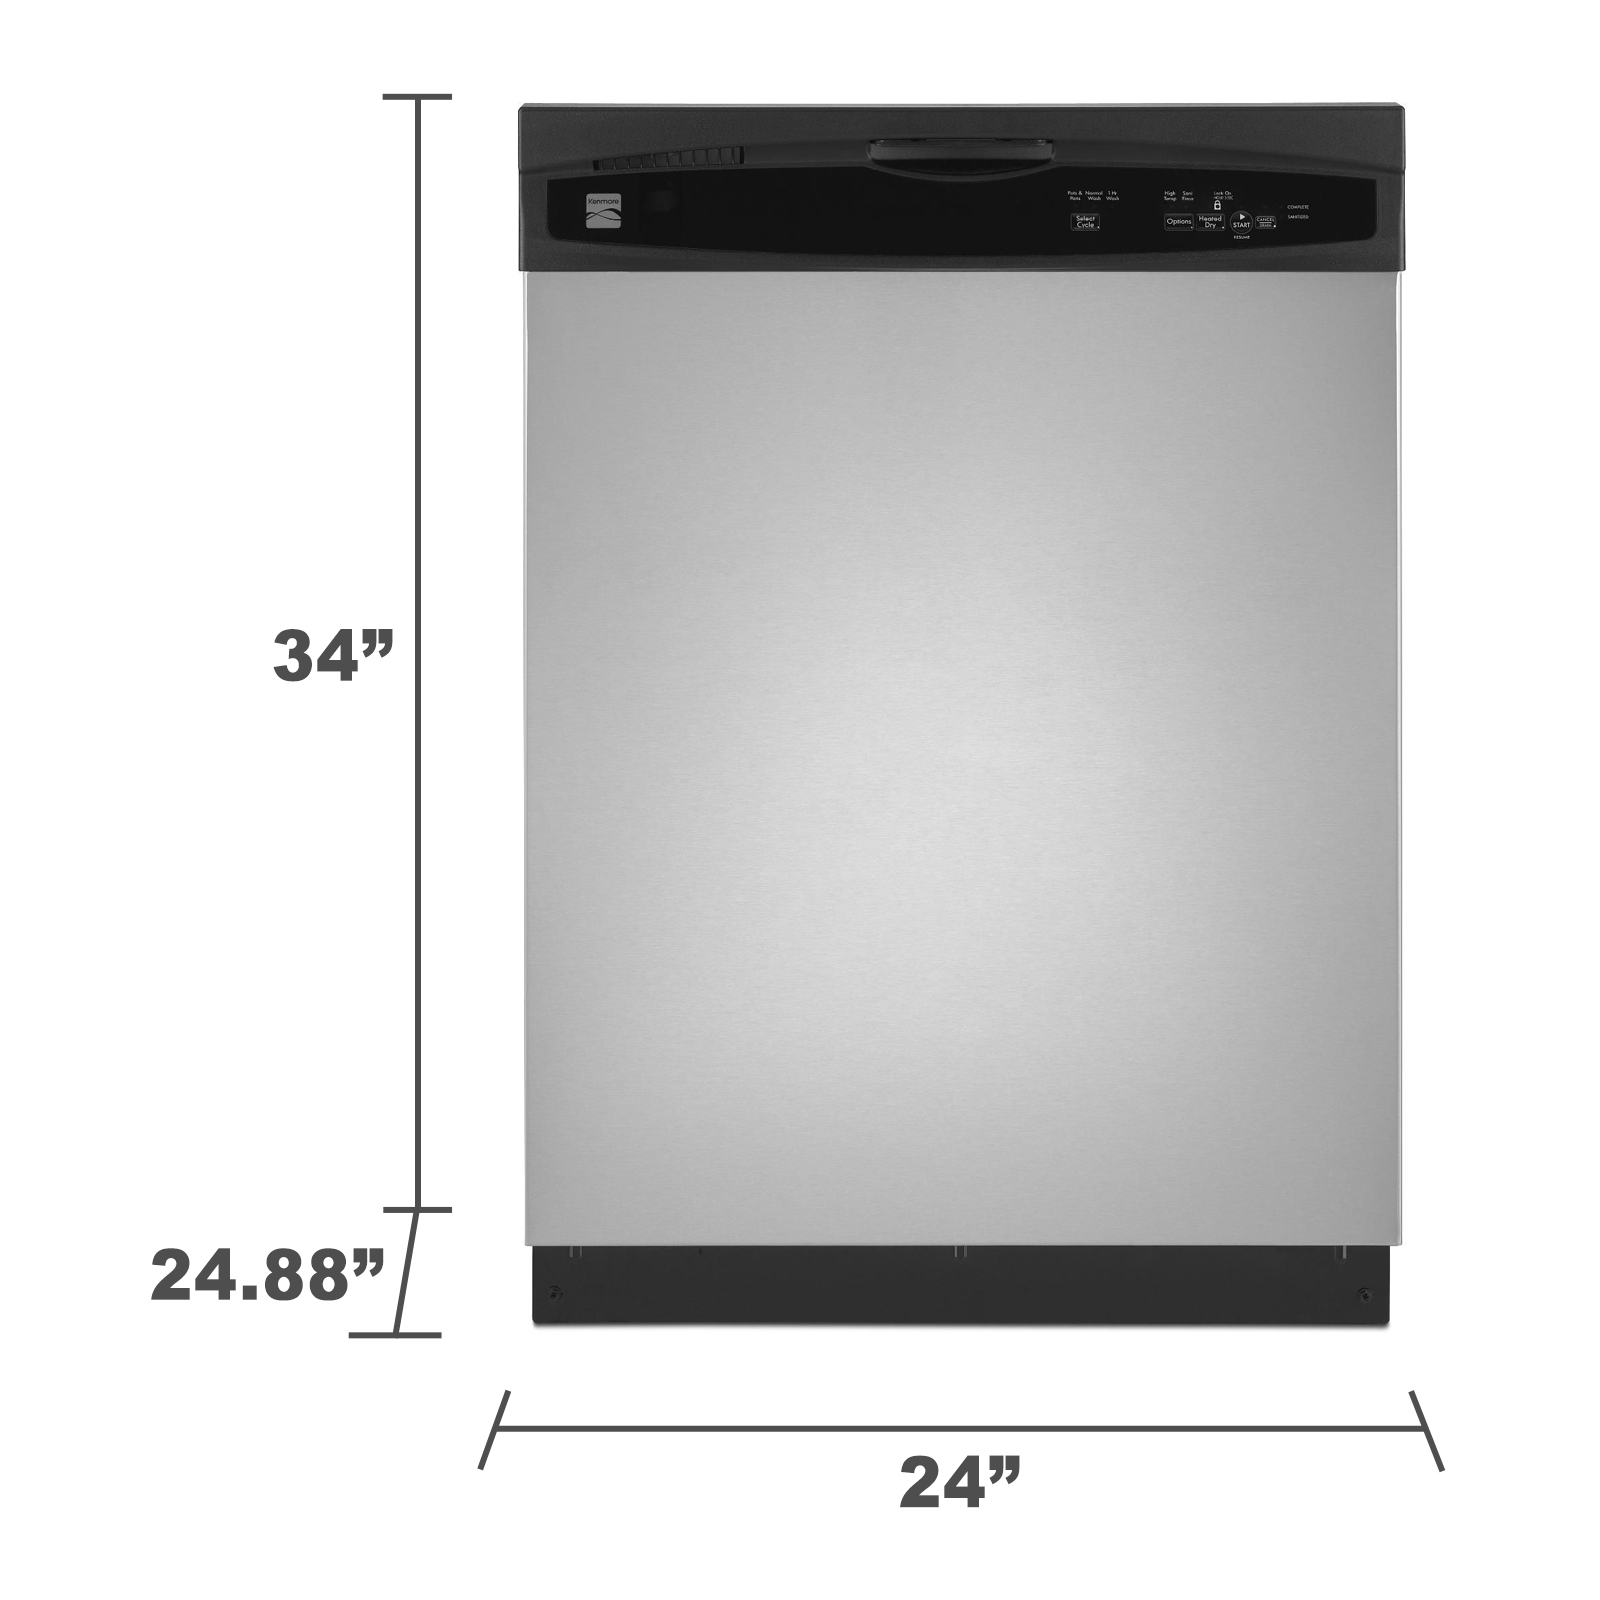 "Kenmore 13073 24"" Built-In Dishwasher - Stainless Steel"